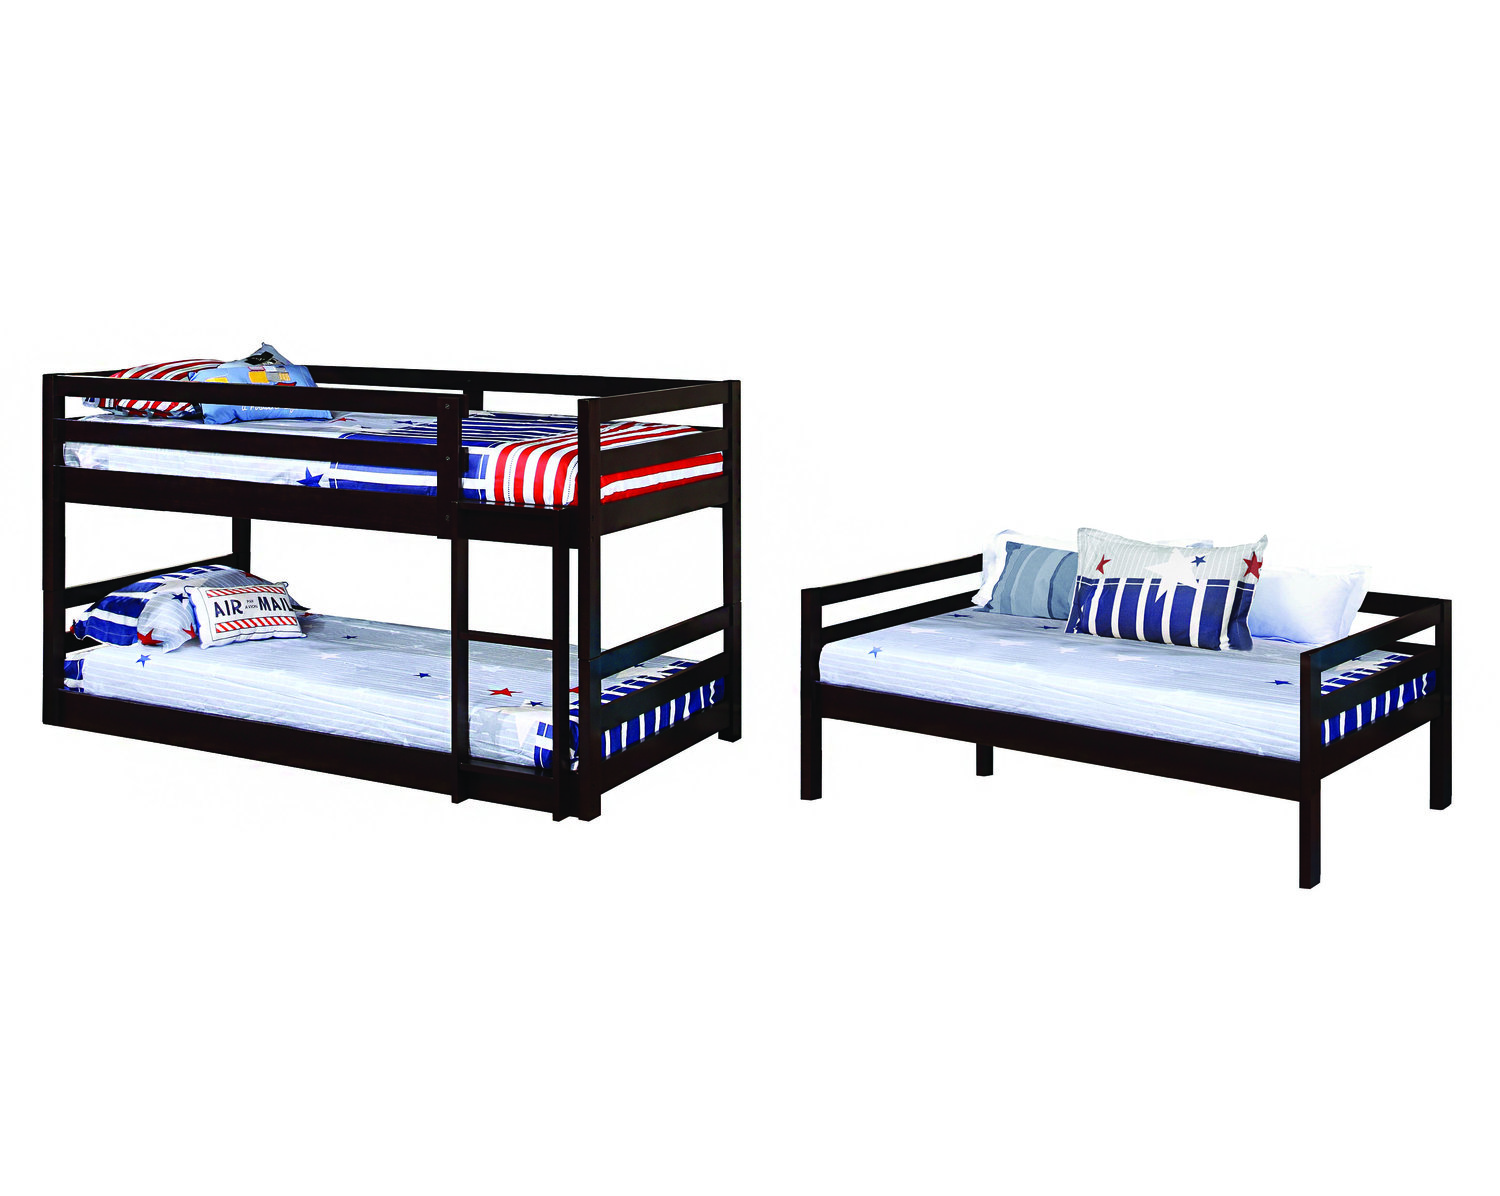 Multiples Black Bunk Bed Coco Furniture Gallery Furnishing Dreams